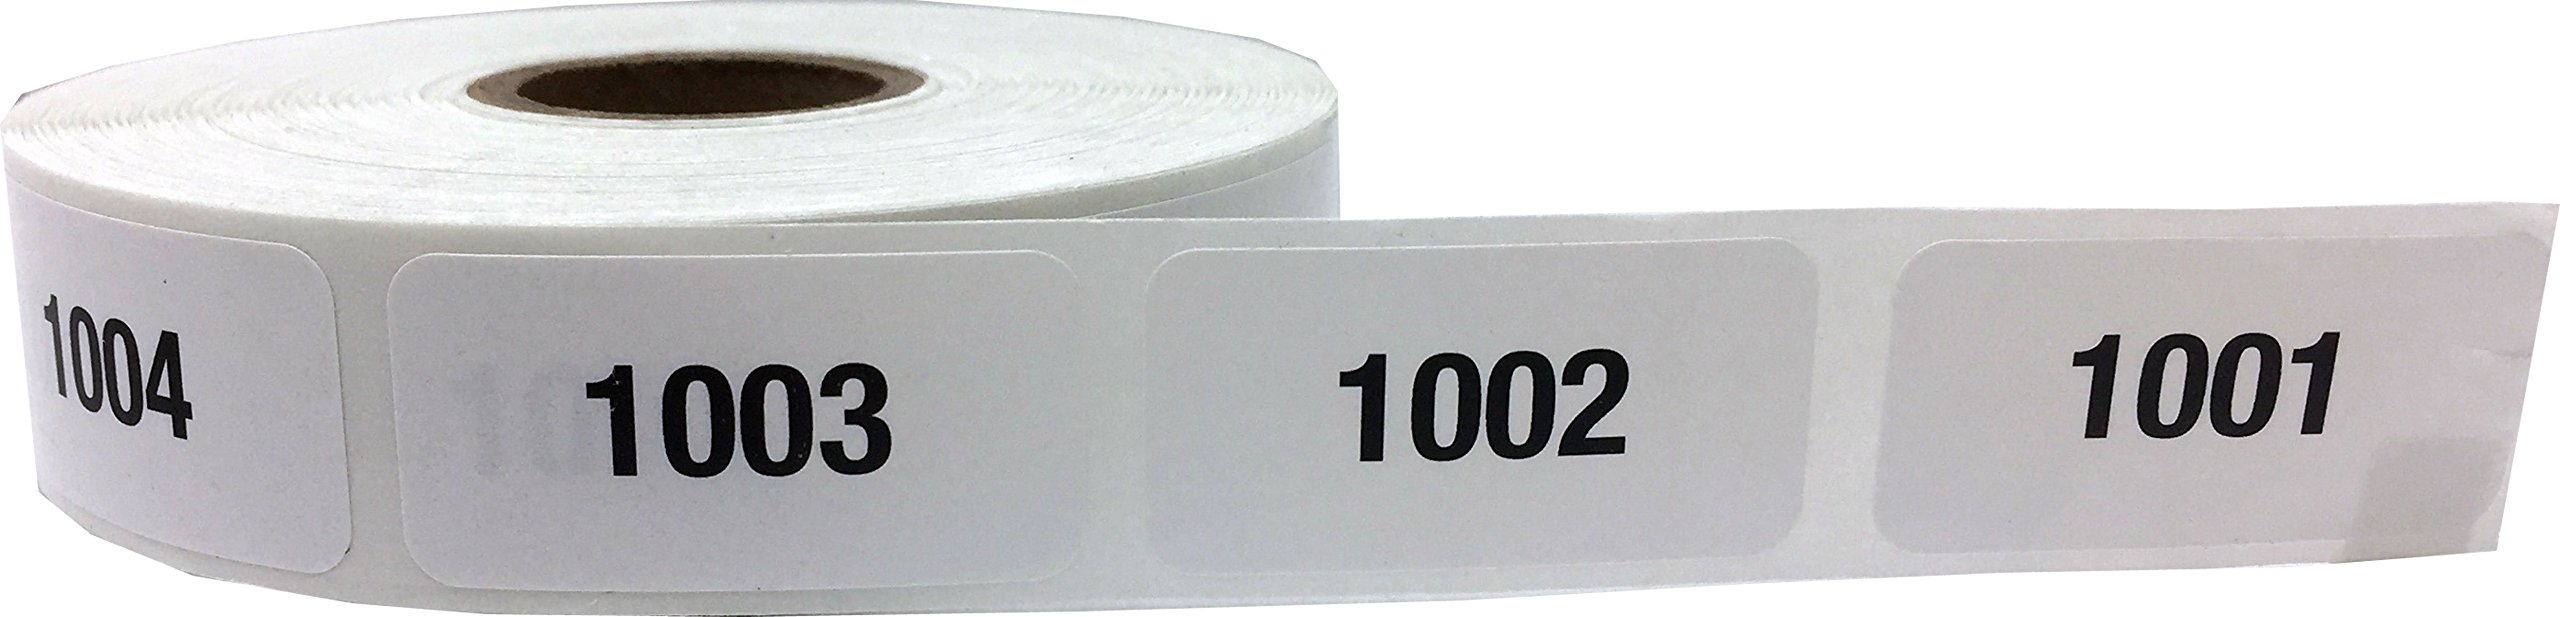 Consecutive Number Labels Bulk Pack Numbers 1 Through 10,000 White/Black .75 x 1.5 Rectangle Small Number Stickers For Inventory by InStockLabels.com (Image #4)